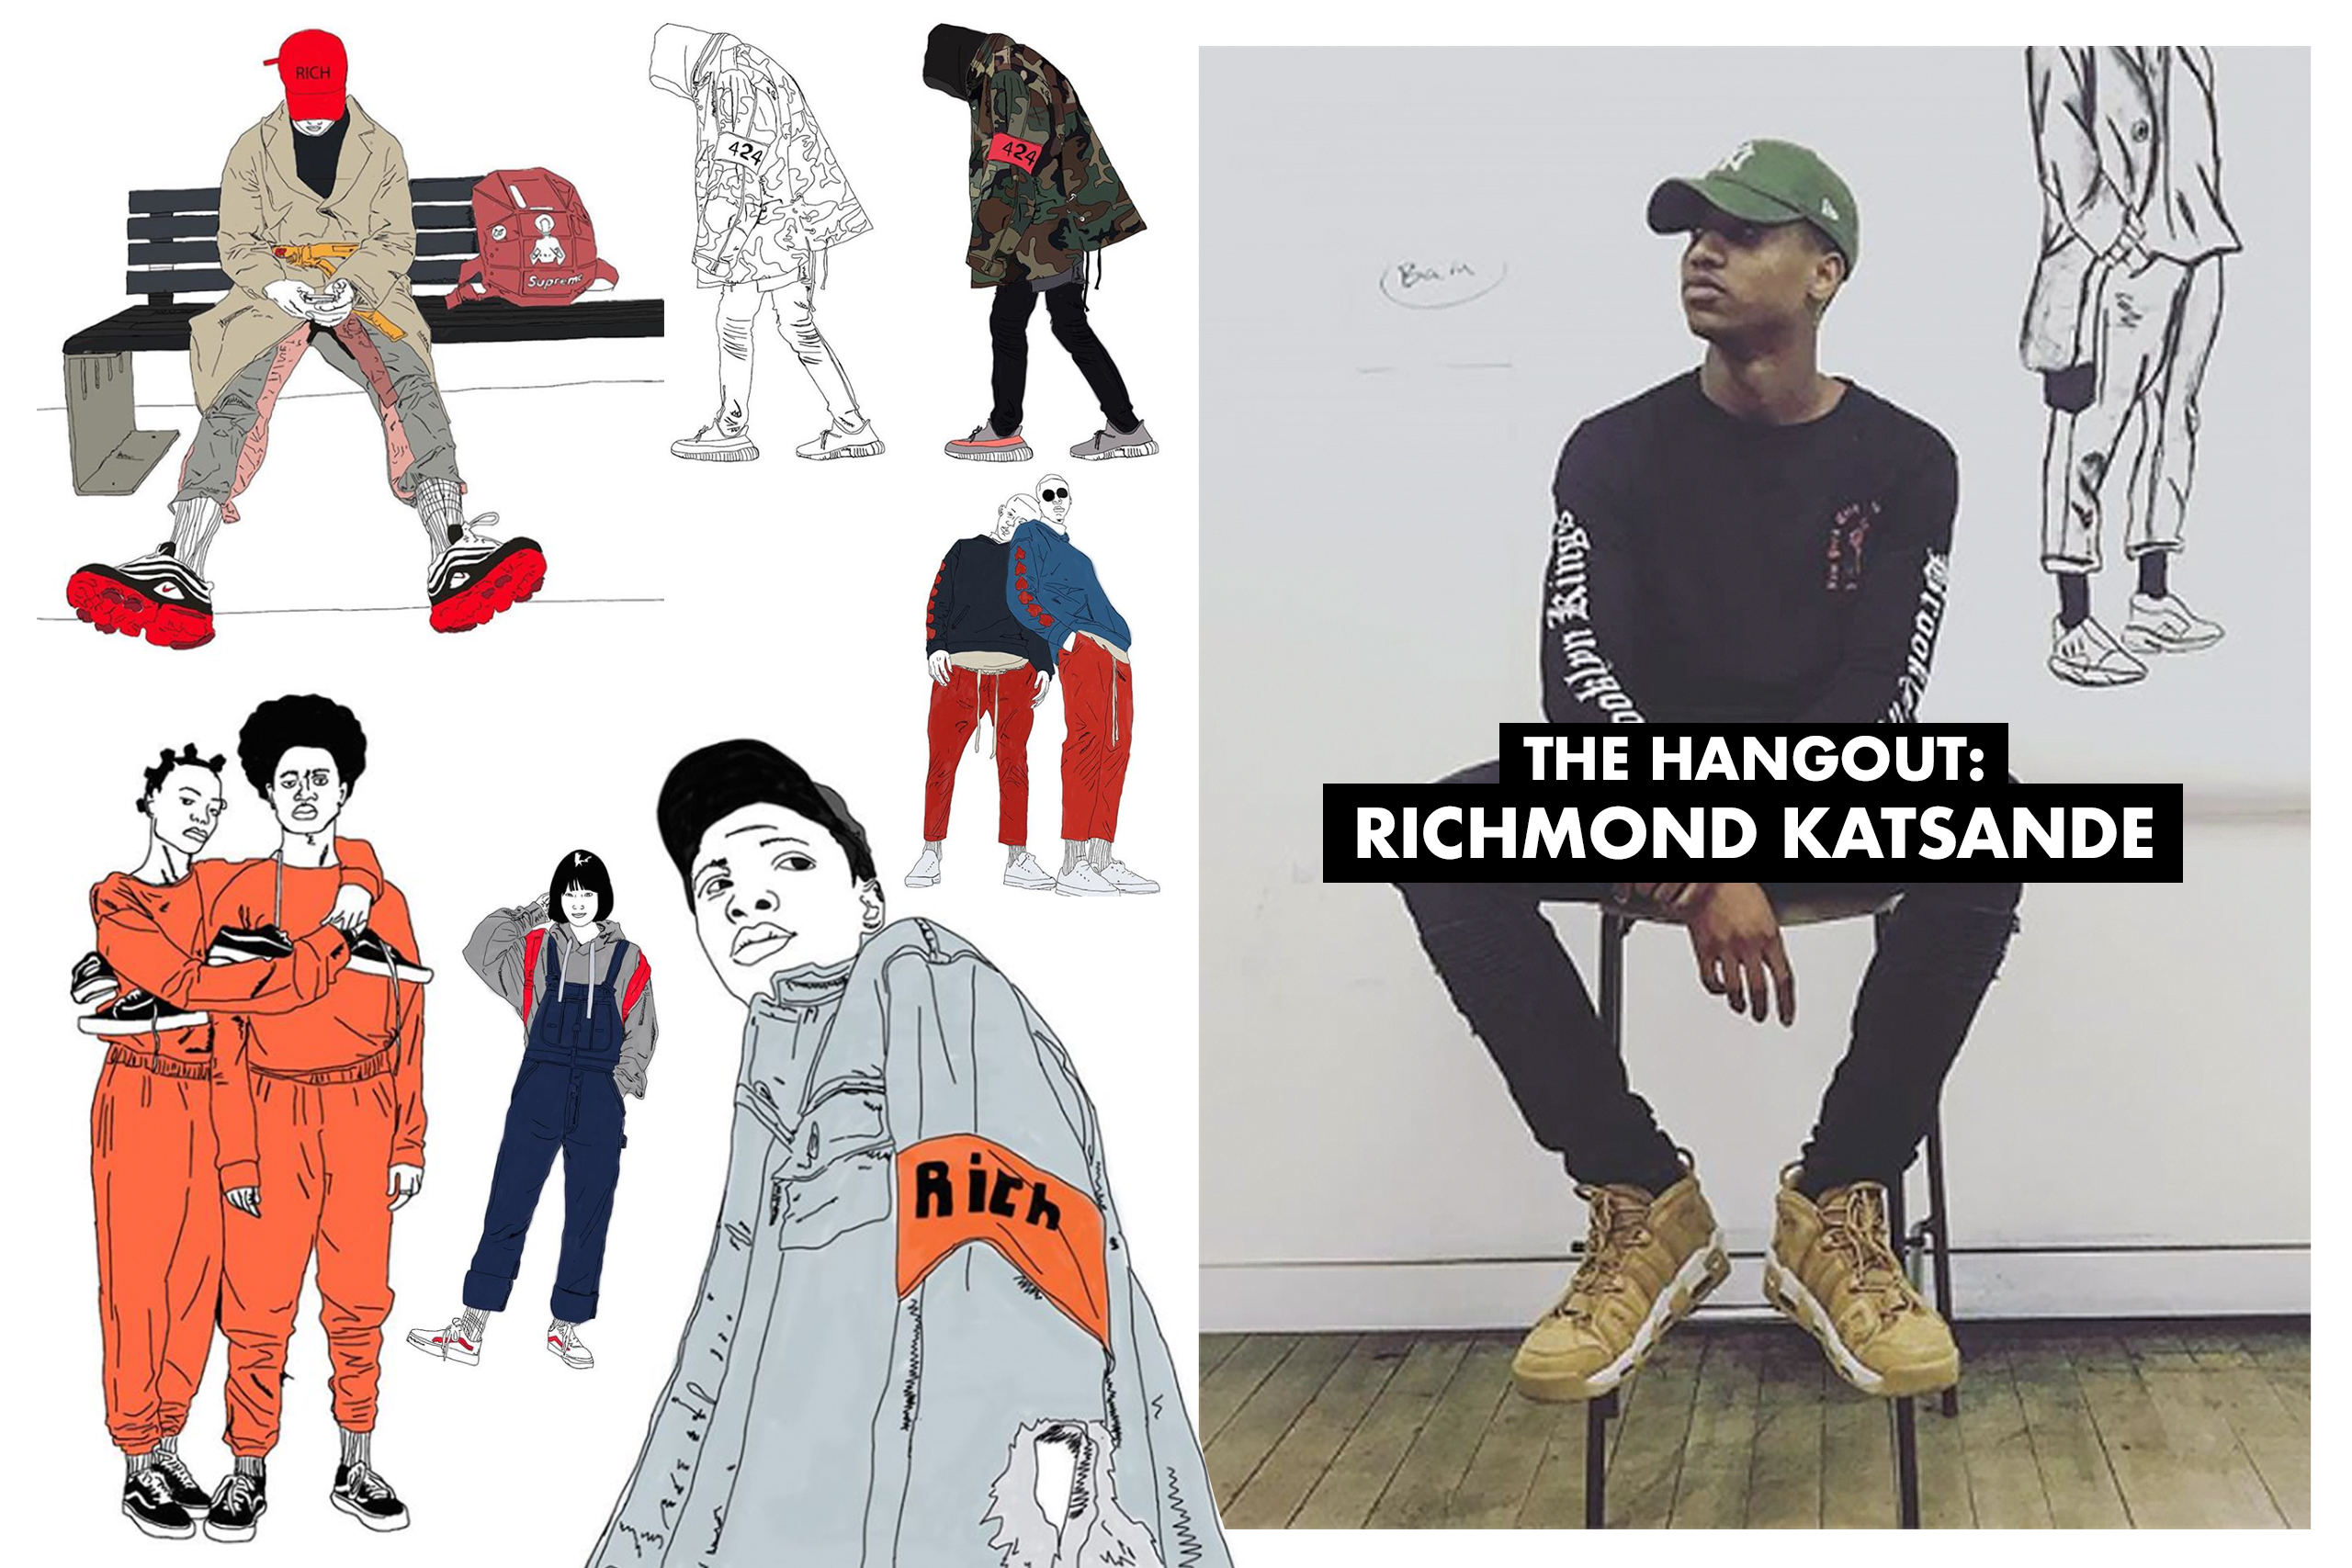 The Hangout: Richmond Katsande